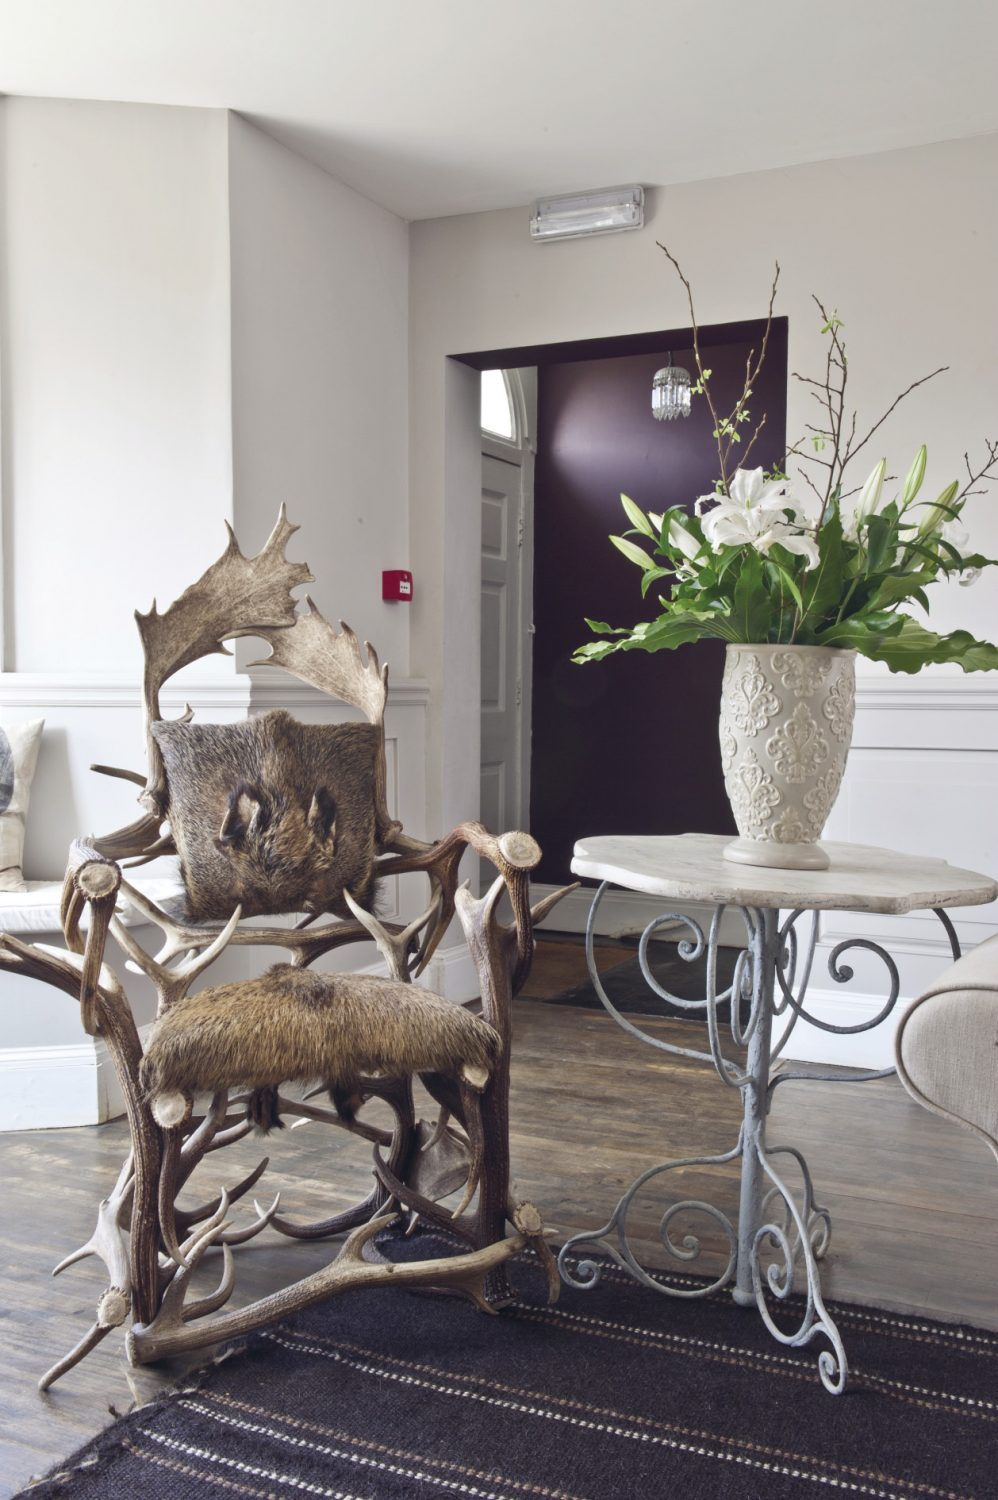 Taking centre stage in the Reception Lounge is The Stag Chair – a mad concoction of antlers, hide and hooves